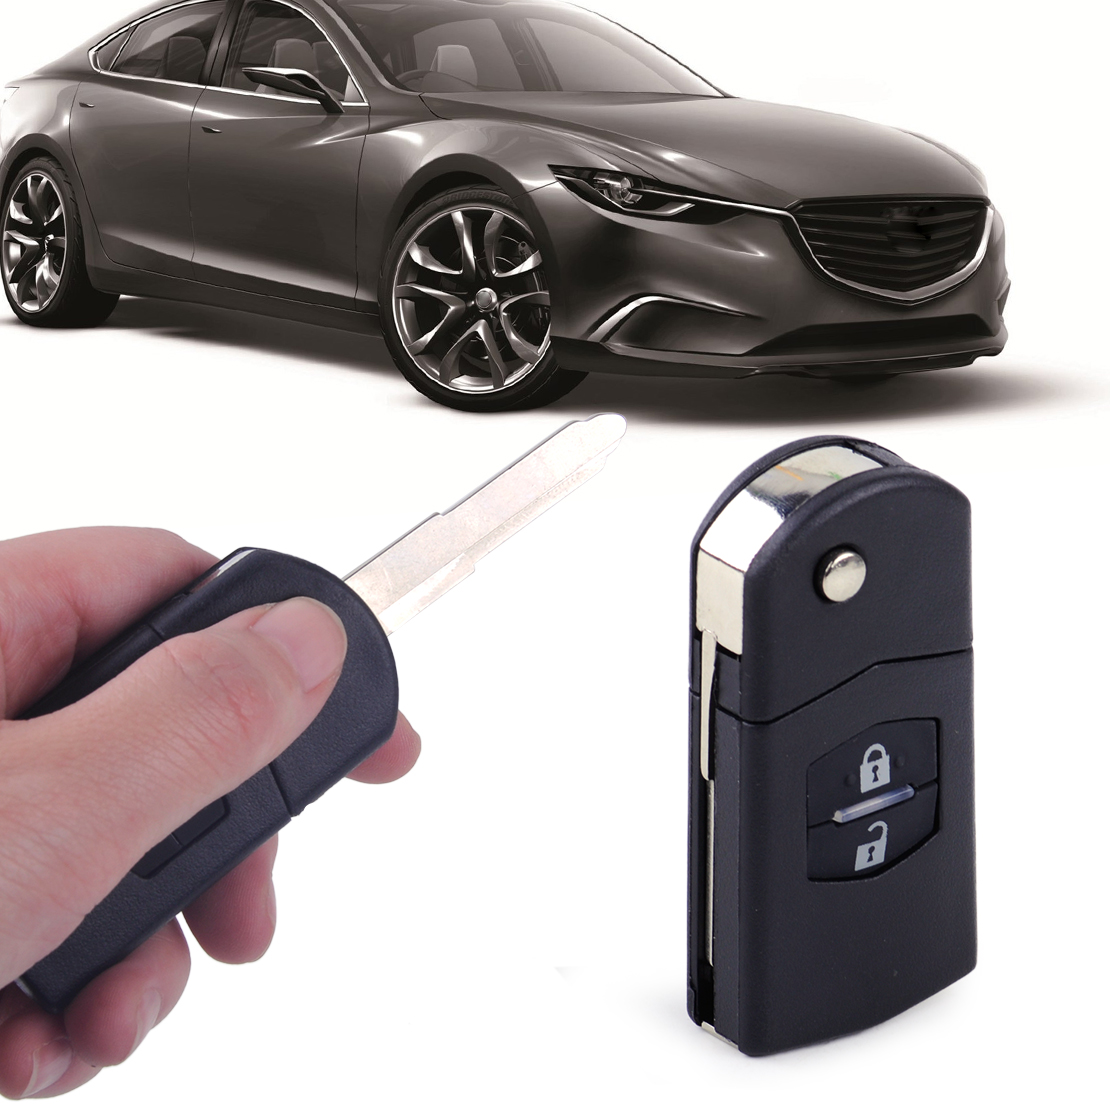 New 2 Buttons Remote Folding Key Case Keyless Remote Key Shell Replacement Flip Shell Case Uncut Blank for 2004 2005 2006 2007 2008 2009 2010 2011 2012 2013 MAZDA 3